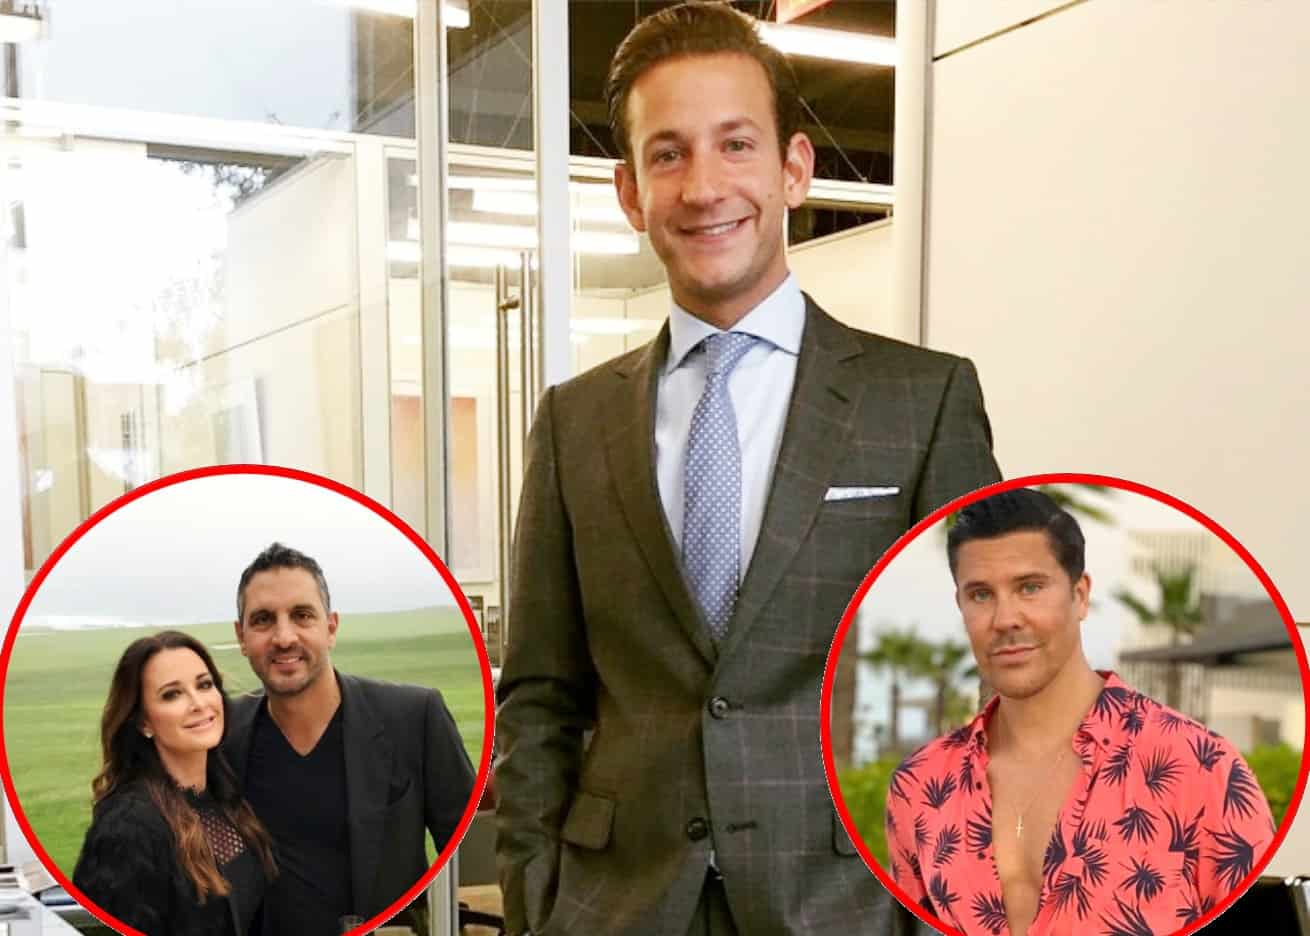 EXCLUSIVE: Million Dollar Listing: Los Angeles' James Harris Reveals How He Really Feels About Fredrik, Discusses Working and Playing With Kyle Richards and Mauricio Umansky, and Weighs in on Tracy Tutor and Chrissy Teigen's Selling Sunset Shade, Plus Talks Podcast